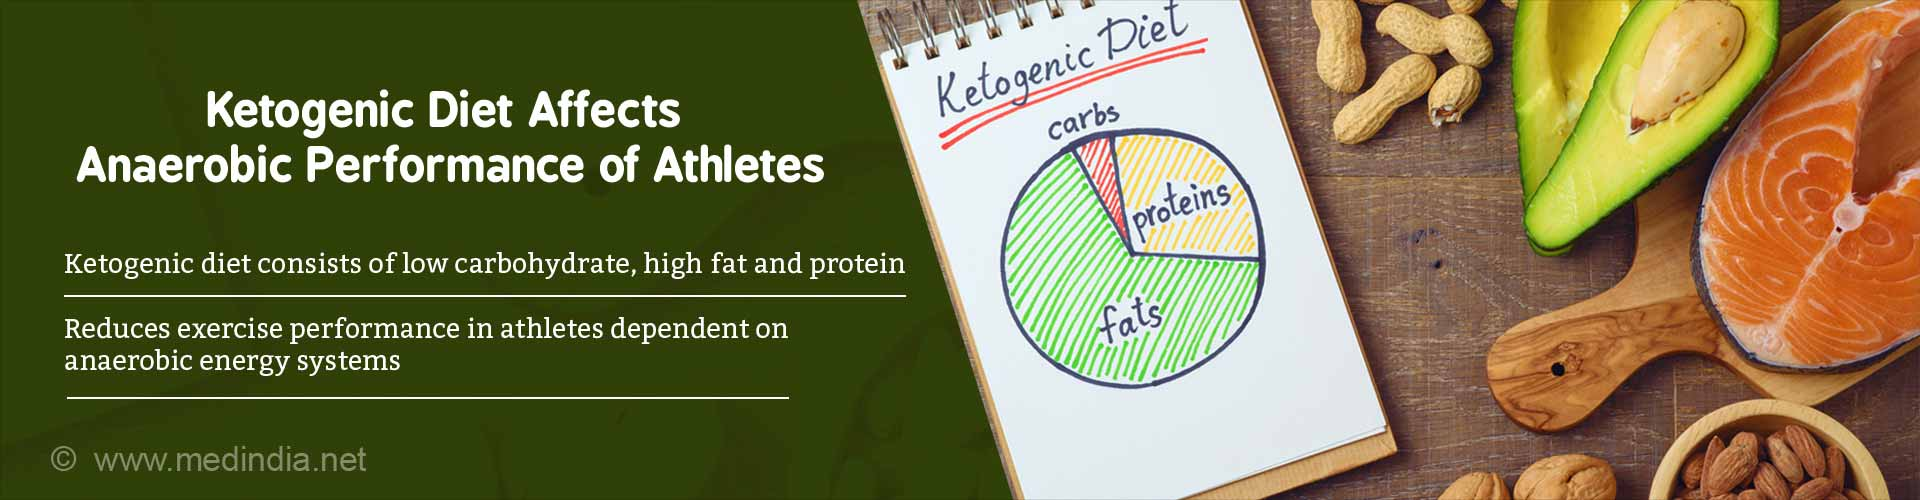 Ketogenic Diet May Affect Anaerobic Performance of Athletes